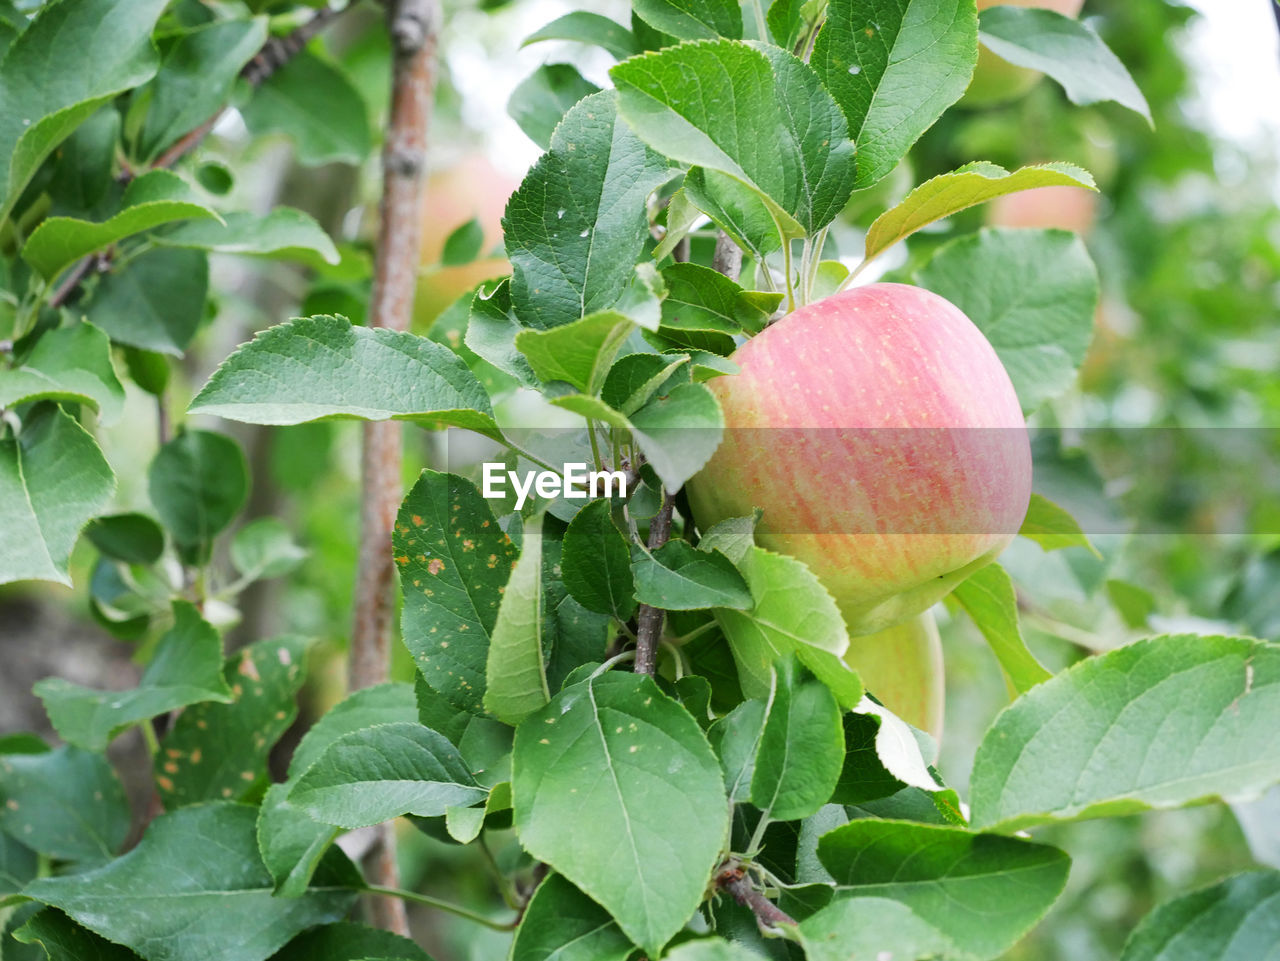 leaf, plant part, growth, plant, green color, freshness, healthy eating, food, fruit, food and drink, close-up, nature, tree, wellbeing, beauty in nature, no people, day, fruit tree, focus on foreground, outdoors, ripe